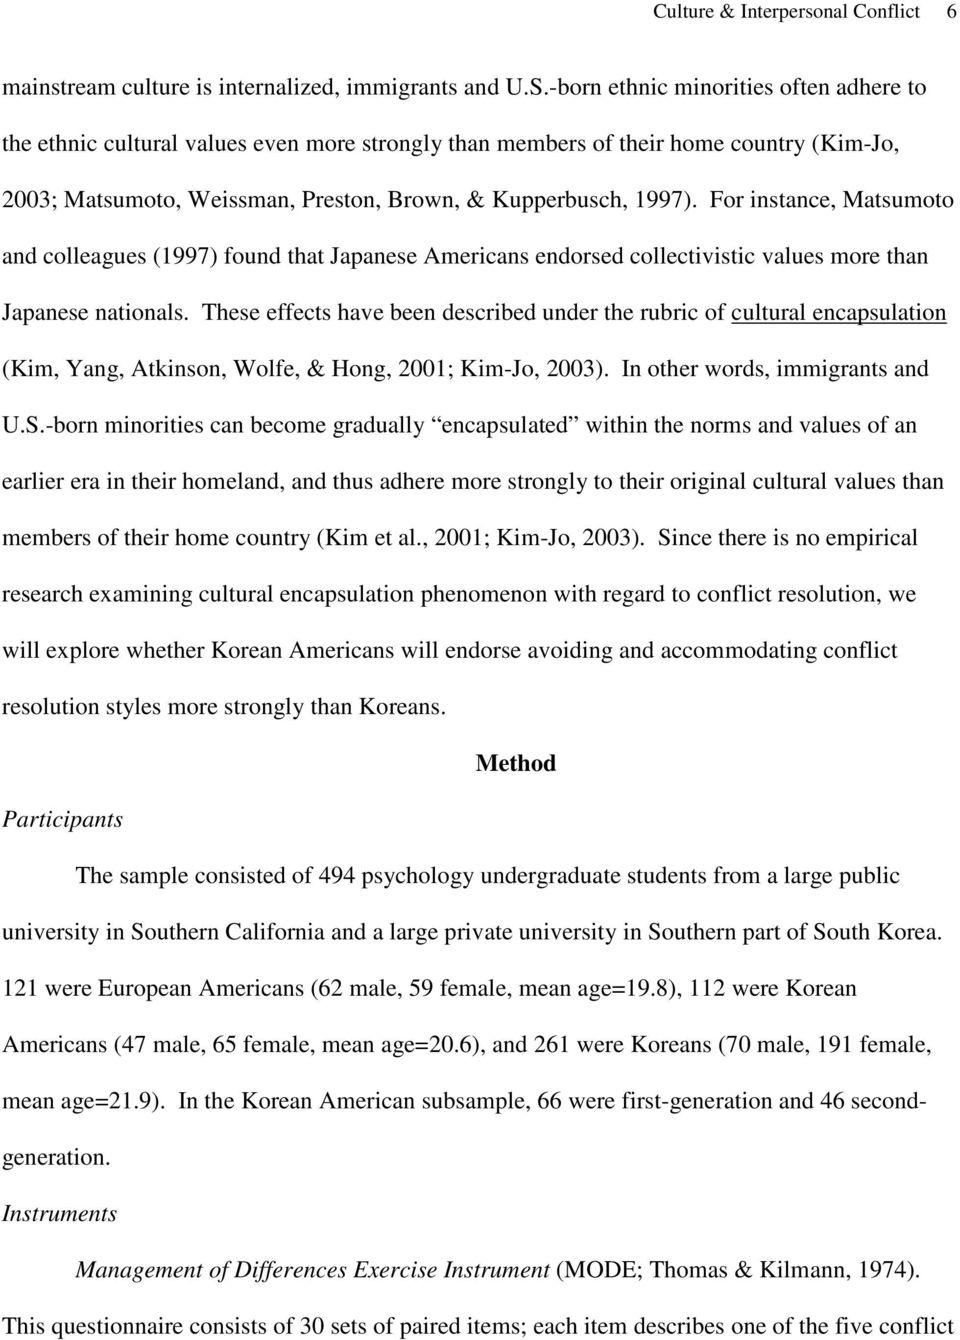 For instance, Matsumoto and colleagues (1997) found that Japanese Americans endorsed collectivistic values more than Japanese nationals.